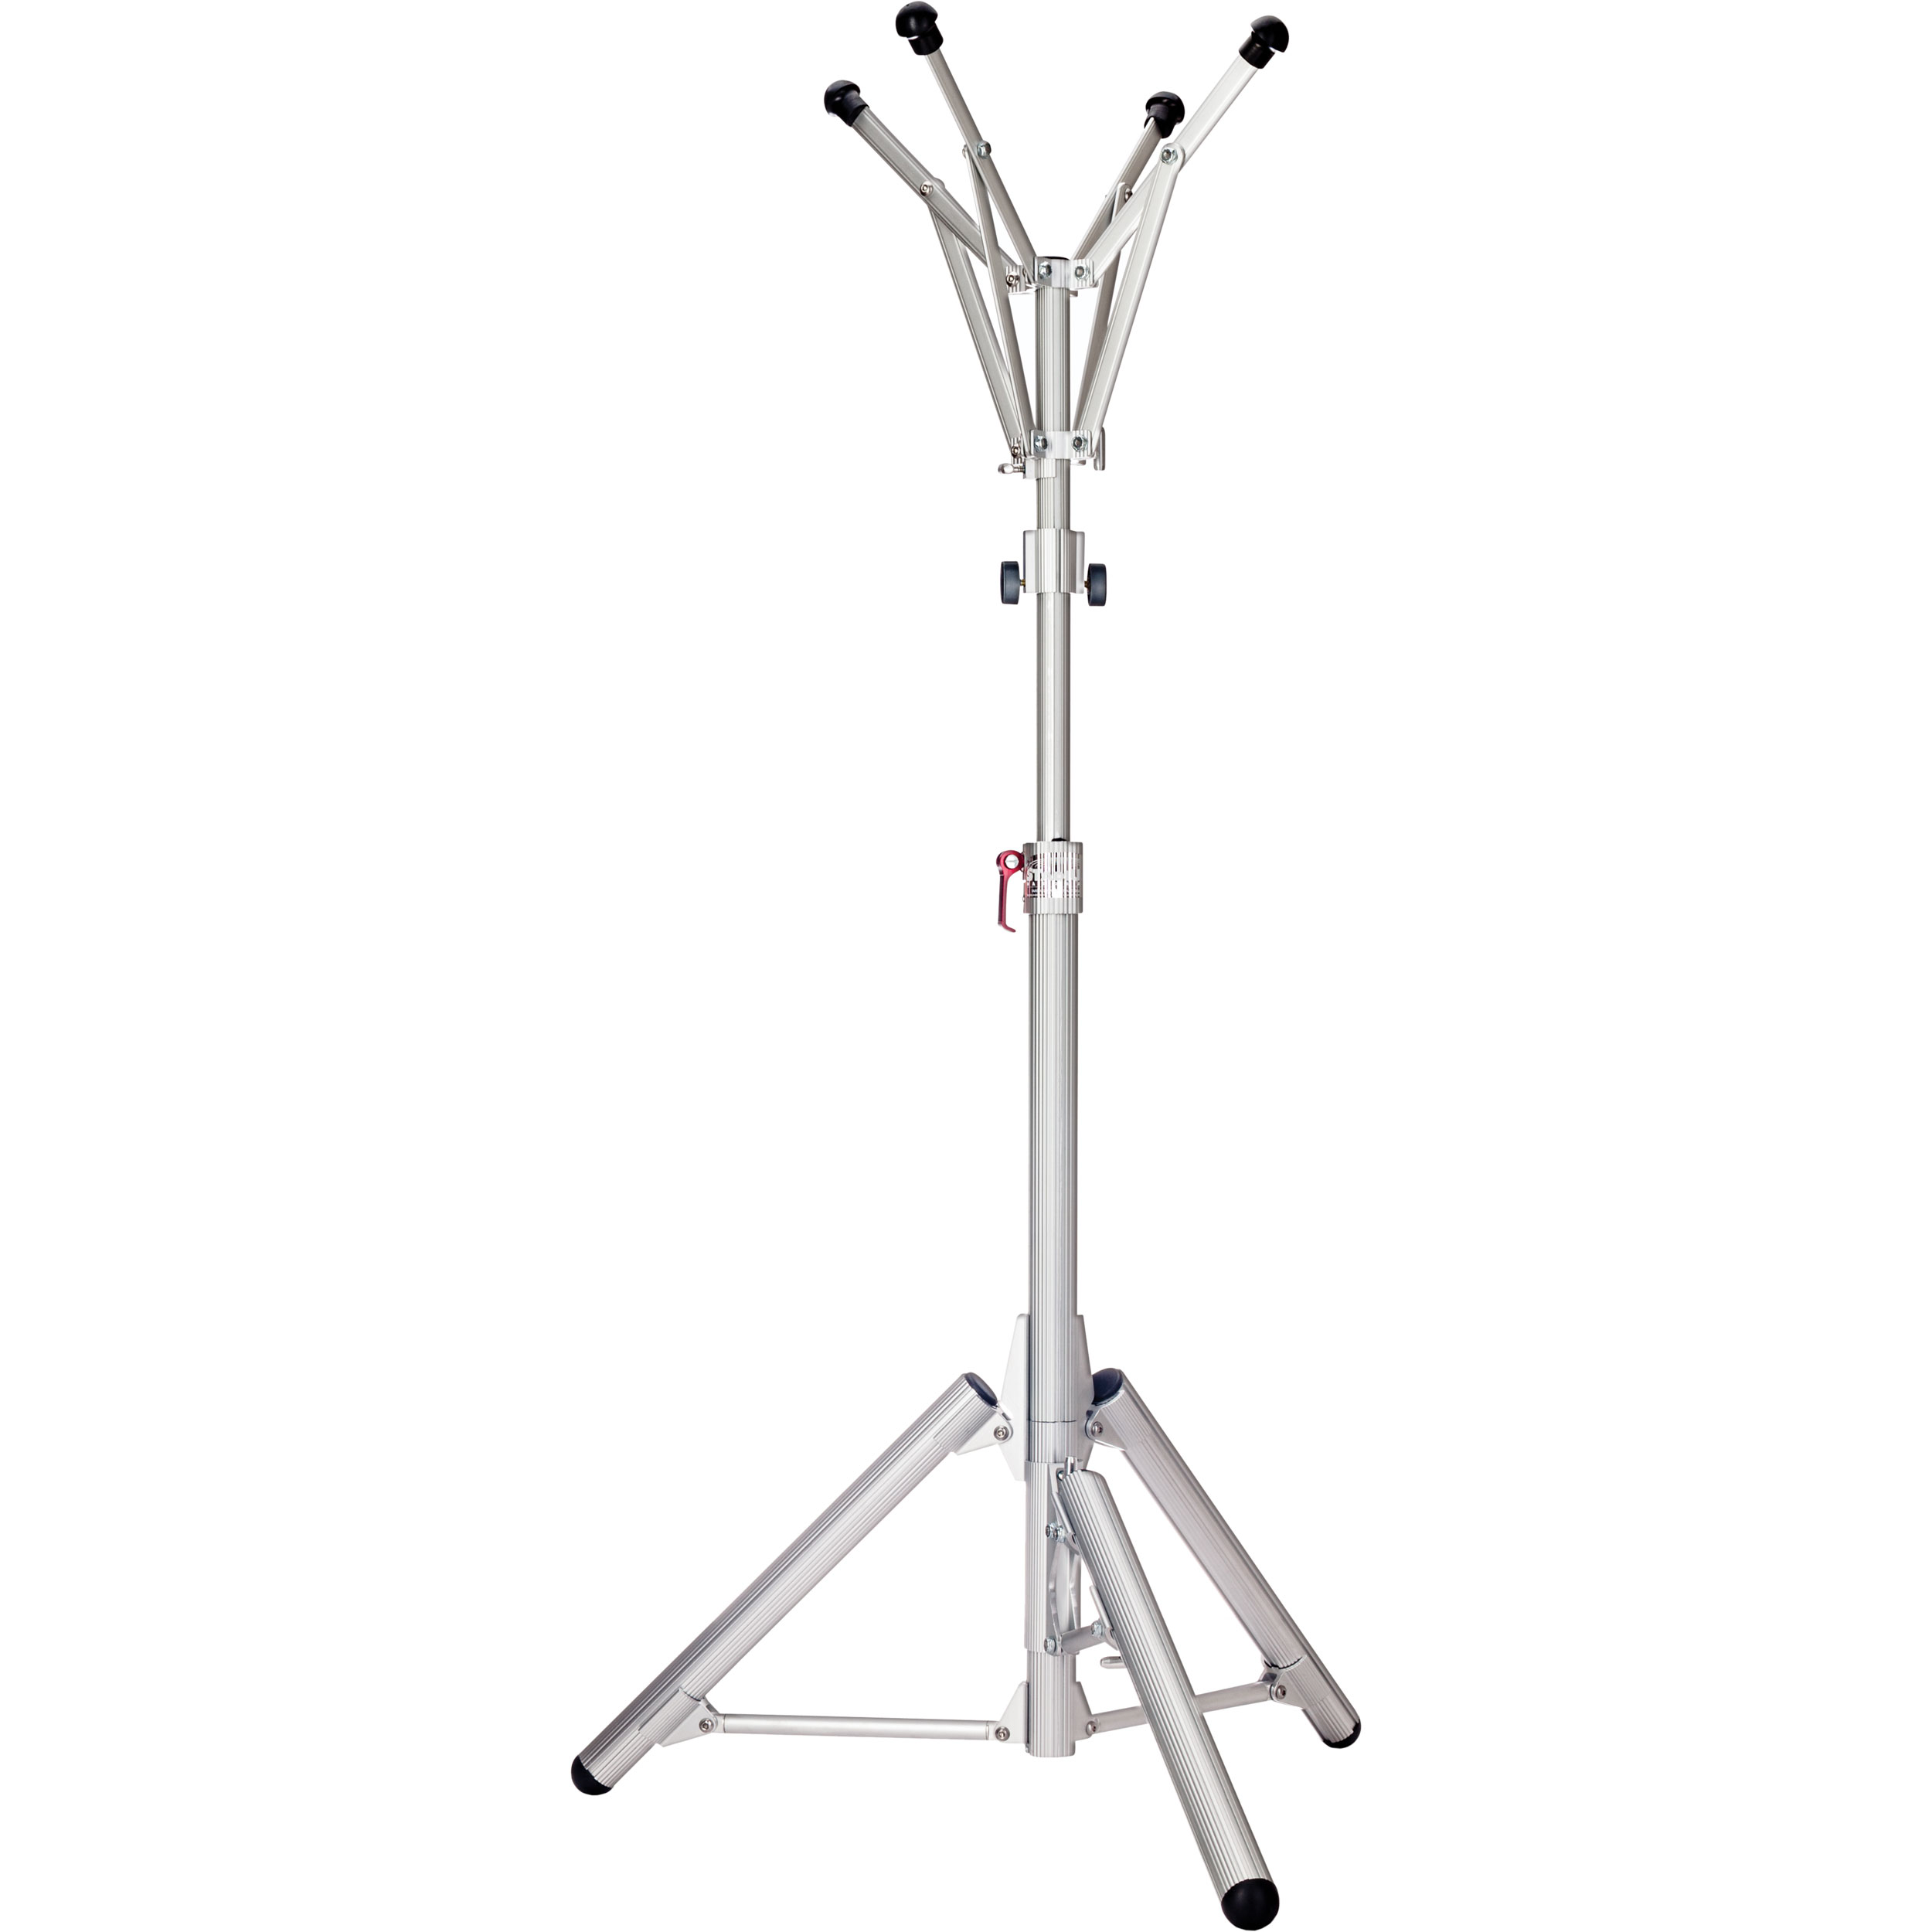 System Blue Randall May Airlift Stadium Hardware Marching Bass Drum Stand May Standba